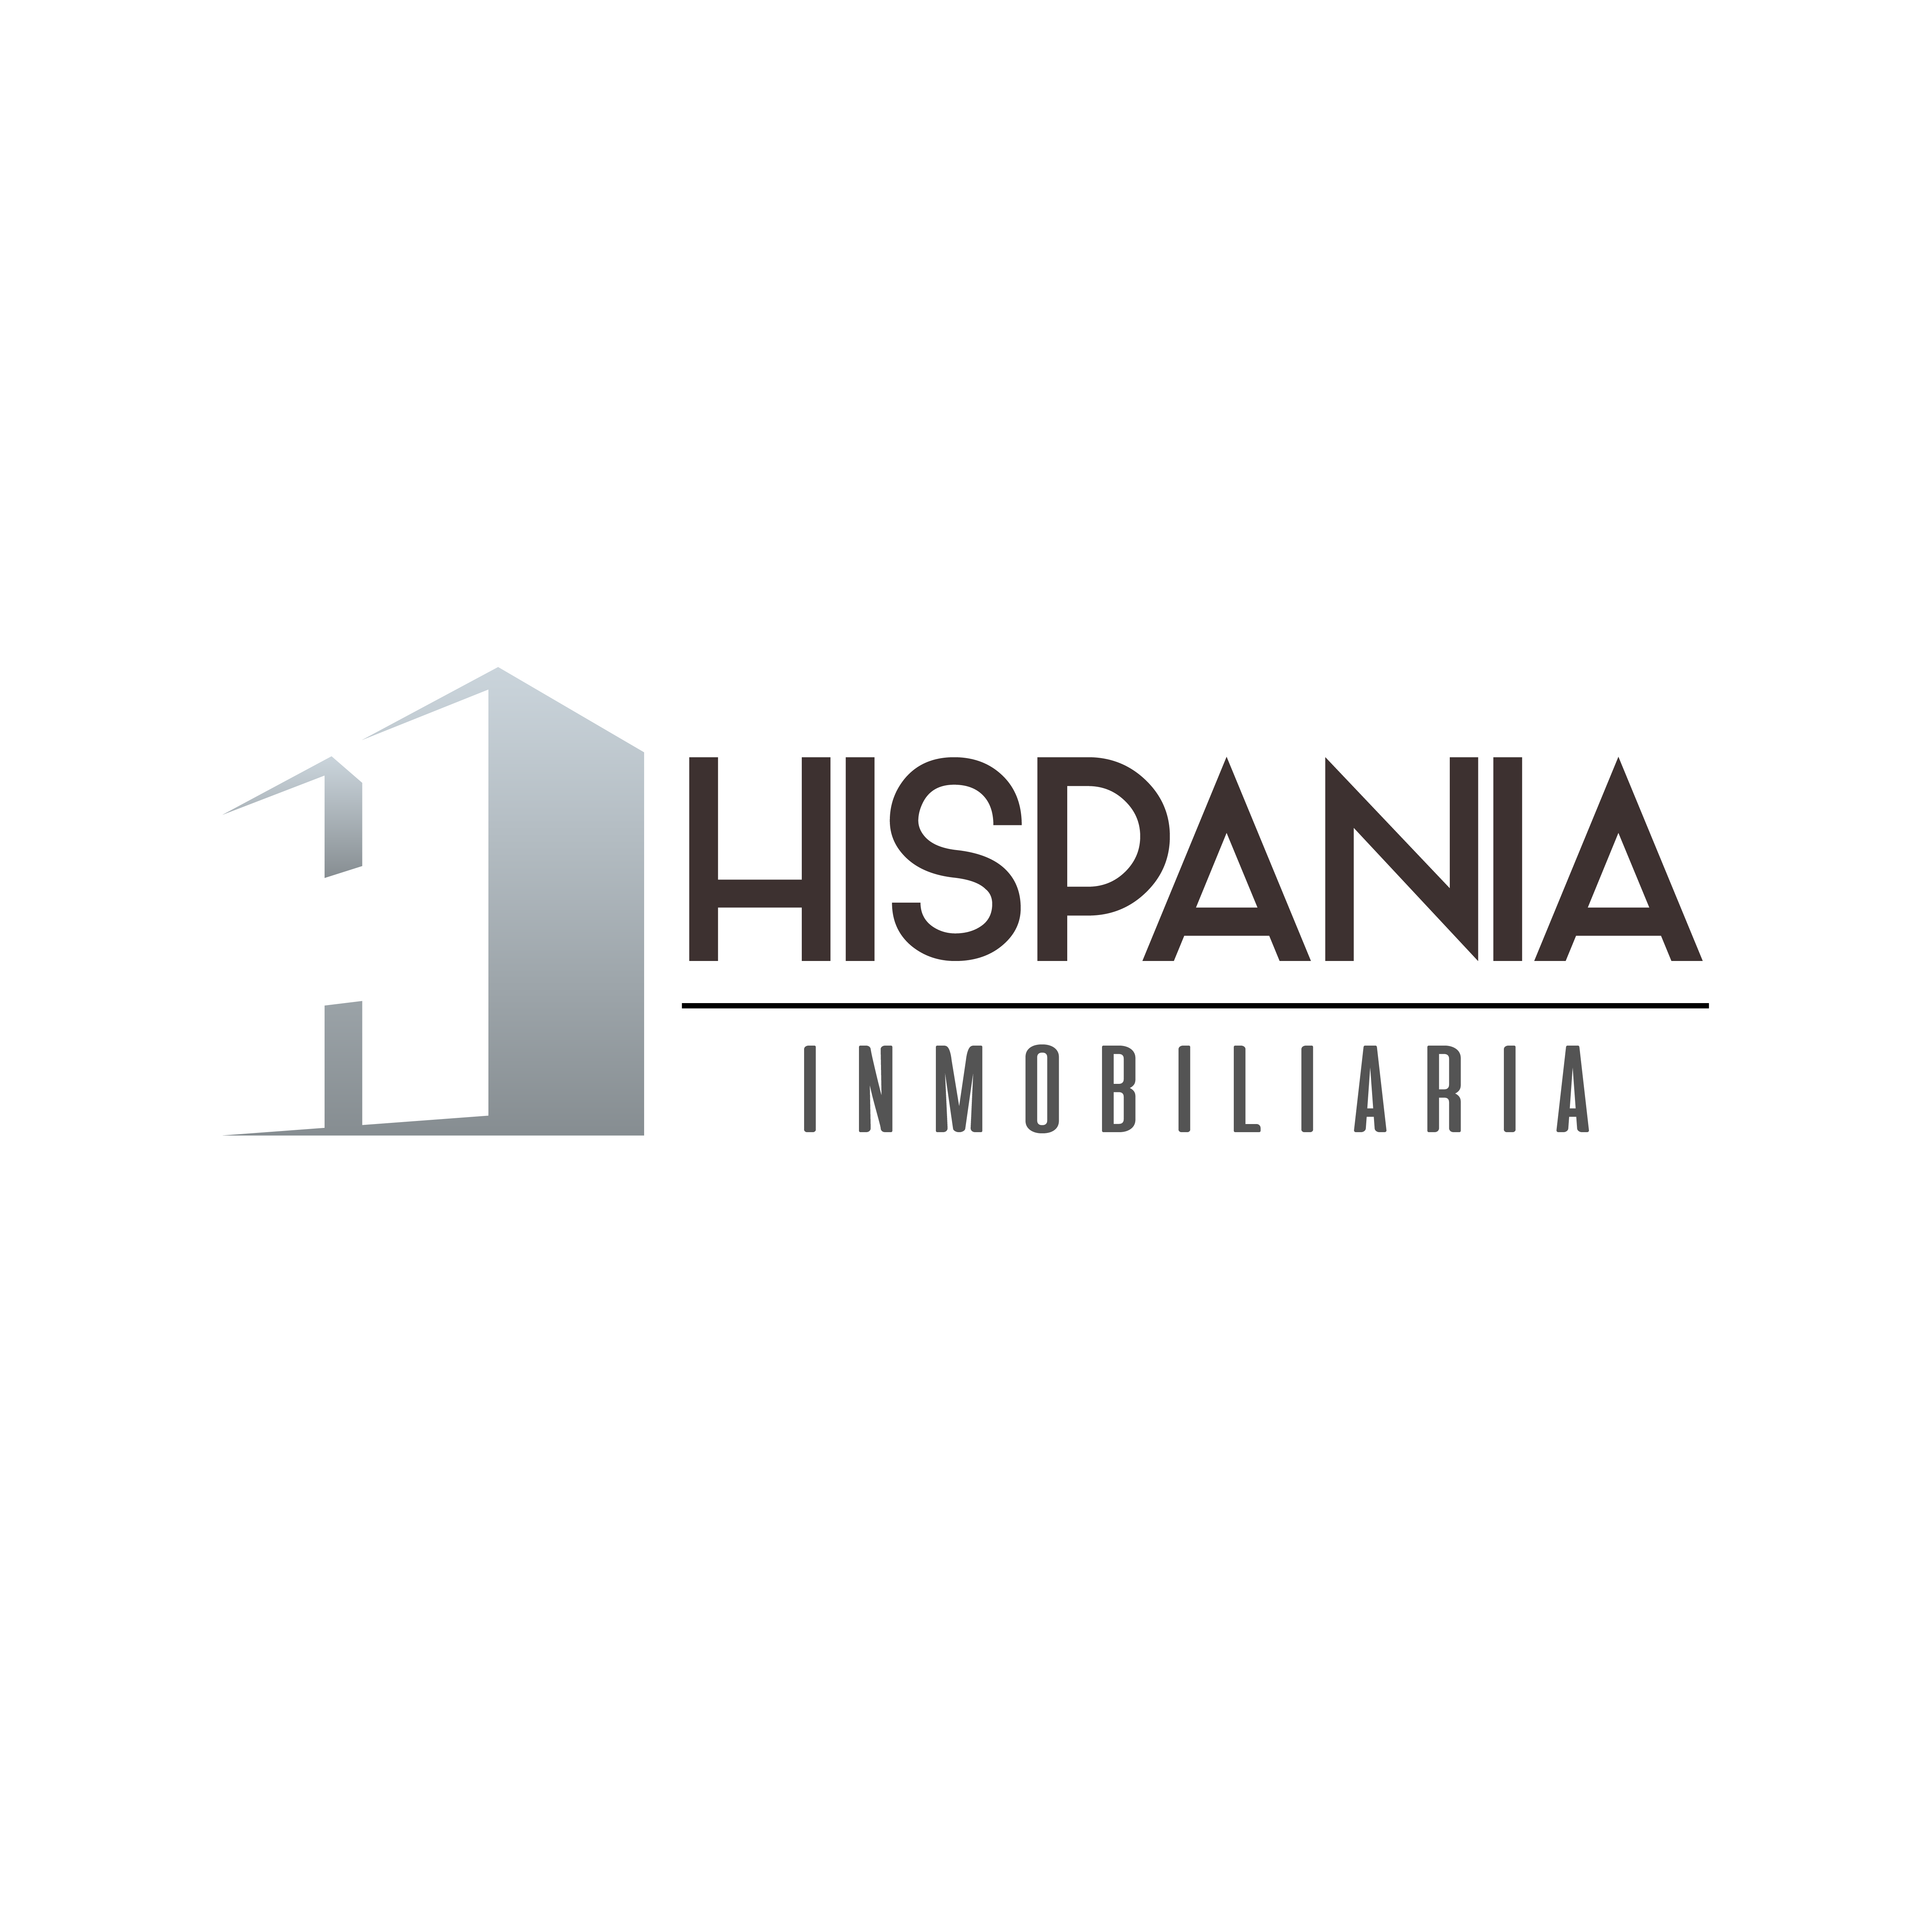 Logo Hispania color